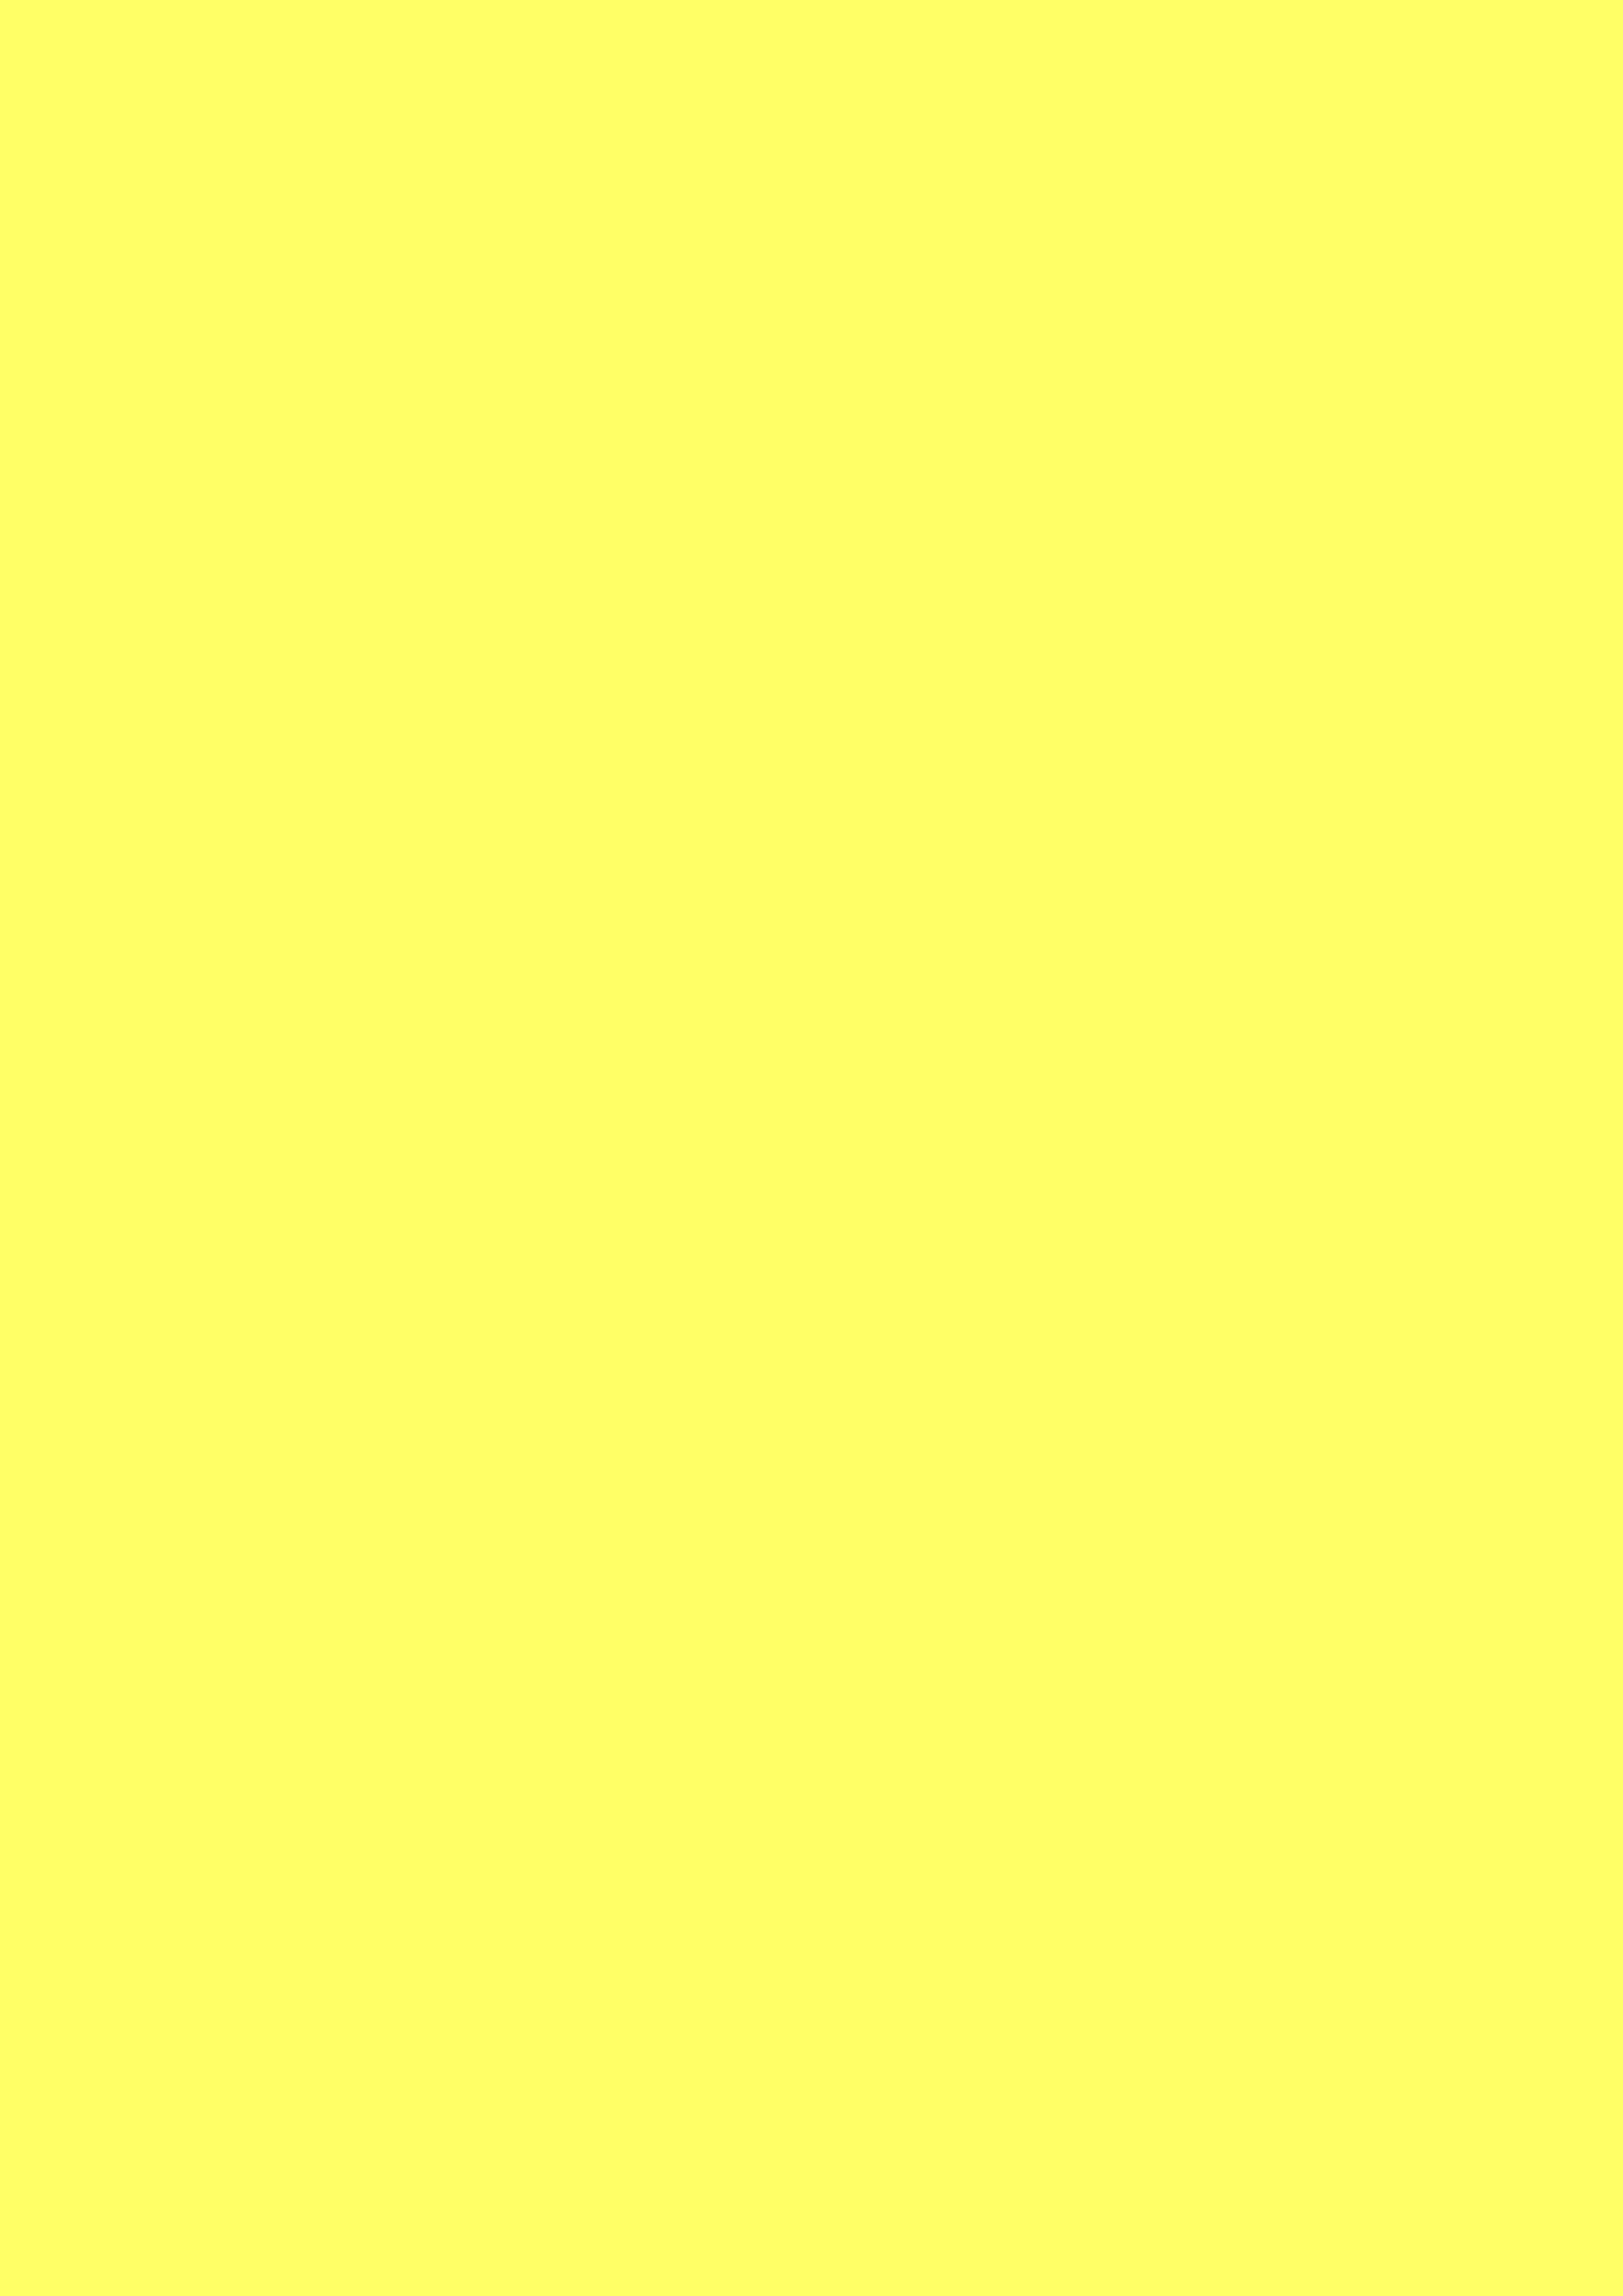 2480x3508 Unmellow Yellow Solid Color Background